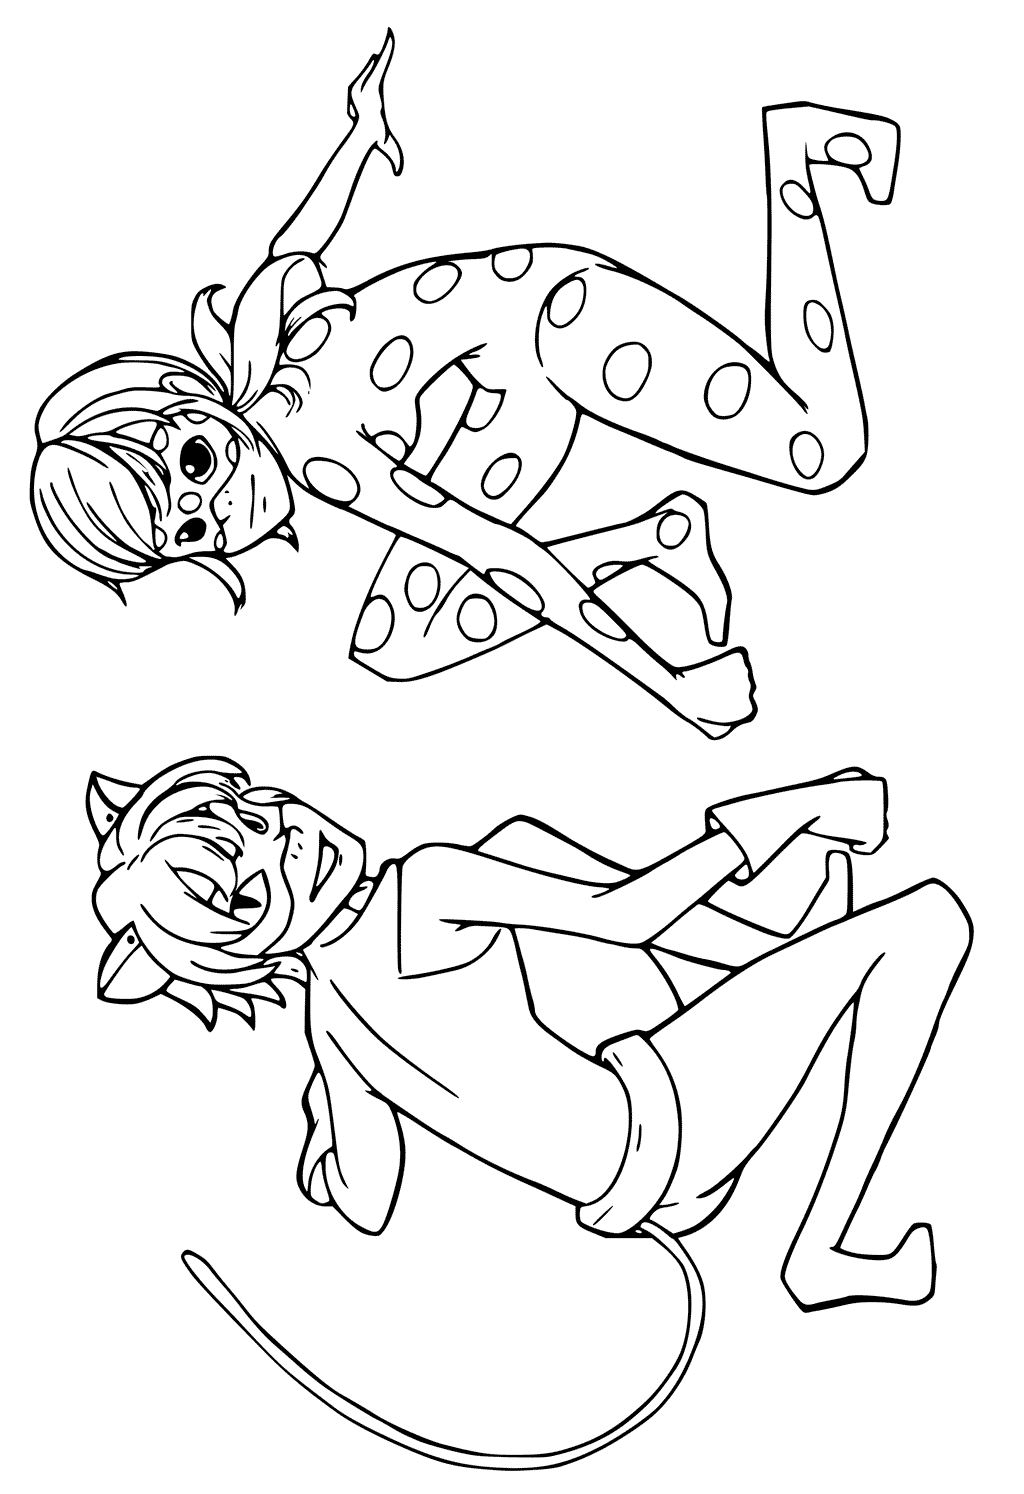 miraculous coloring pages - new coloring pages